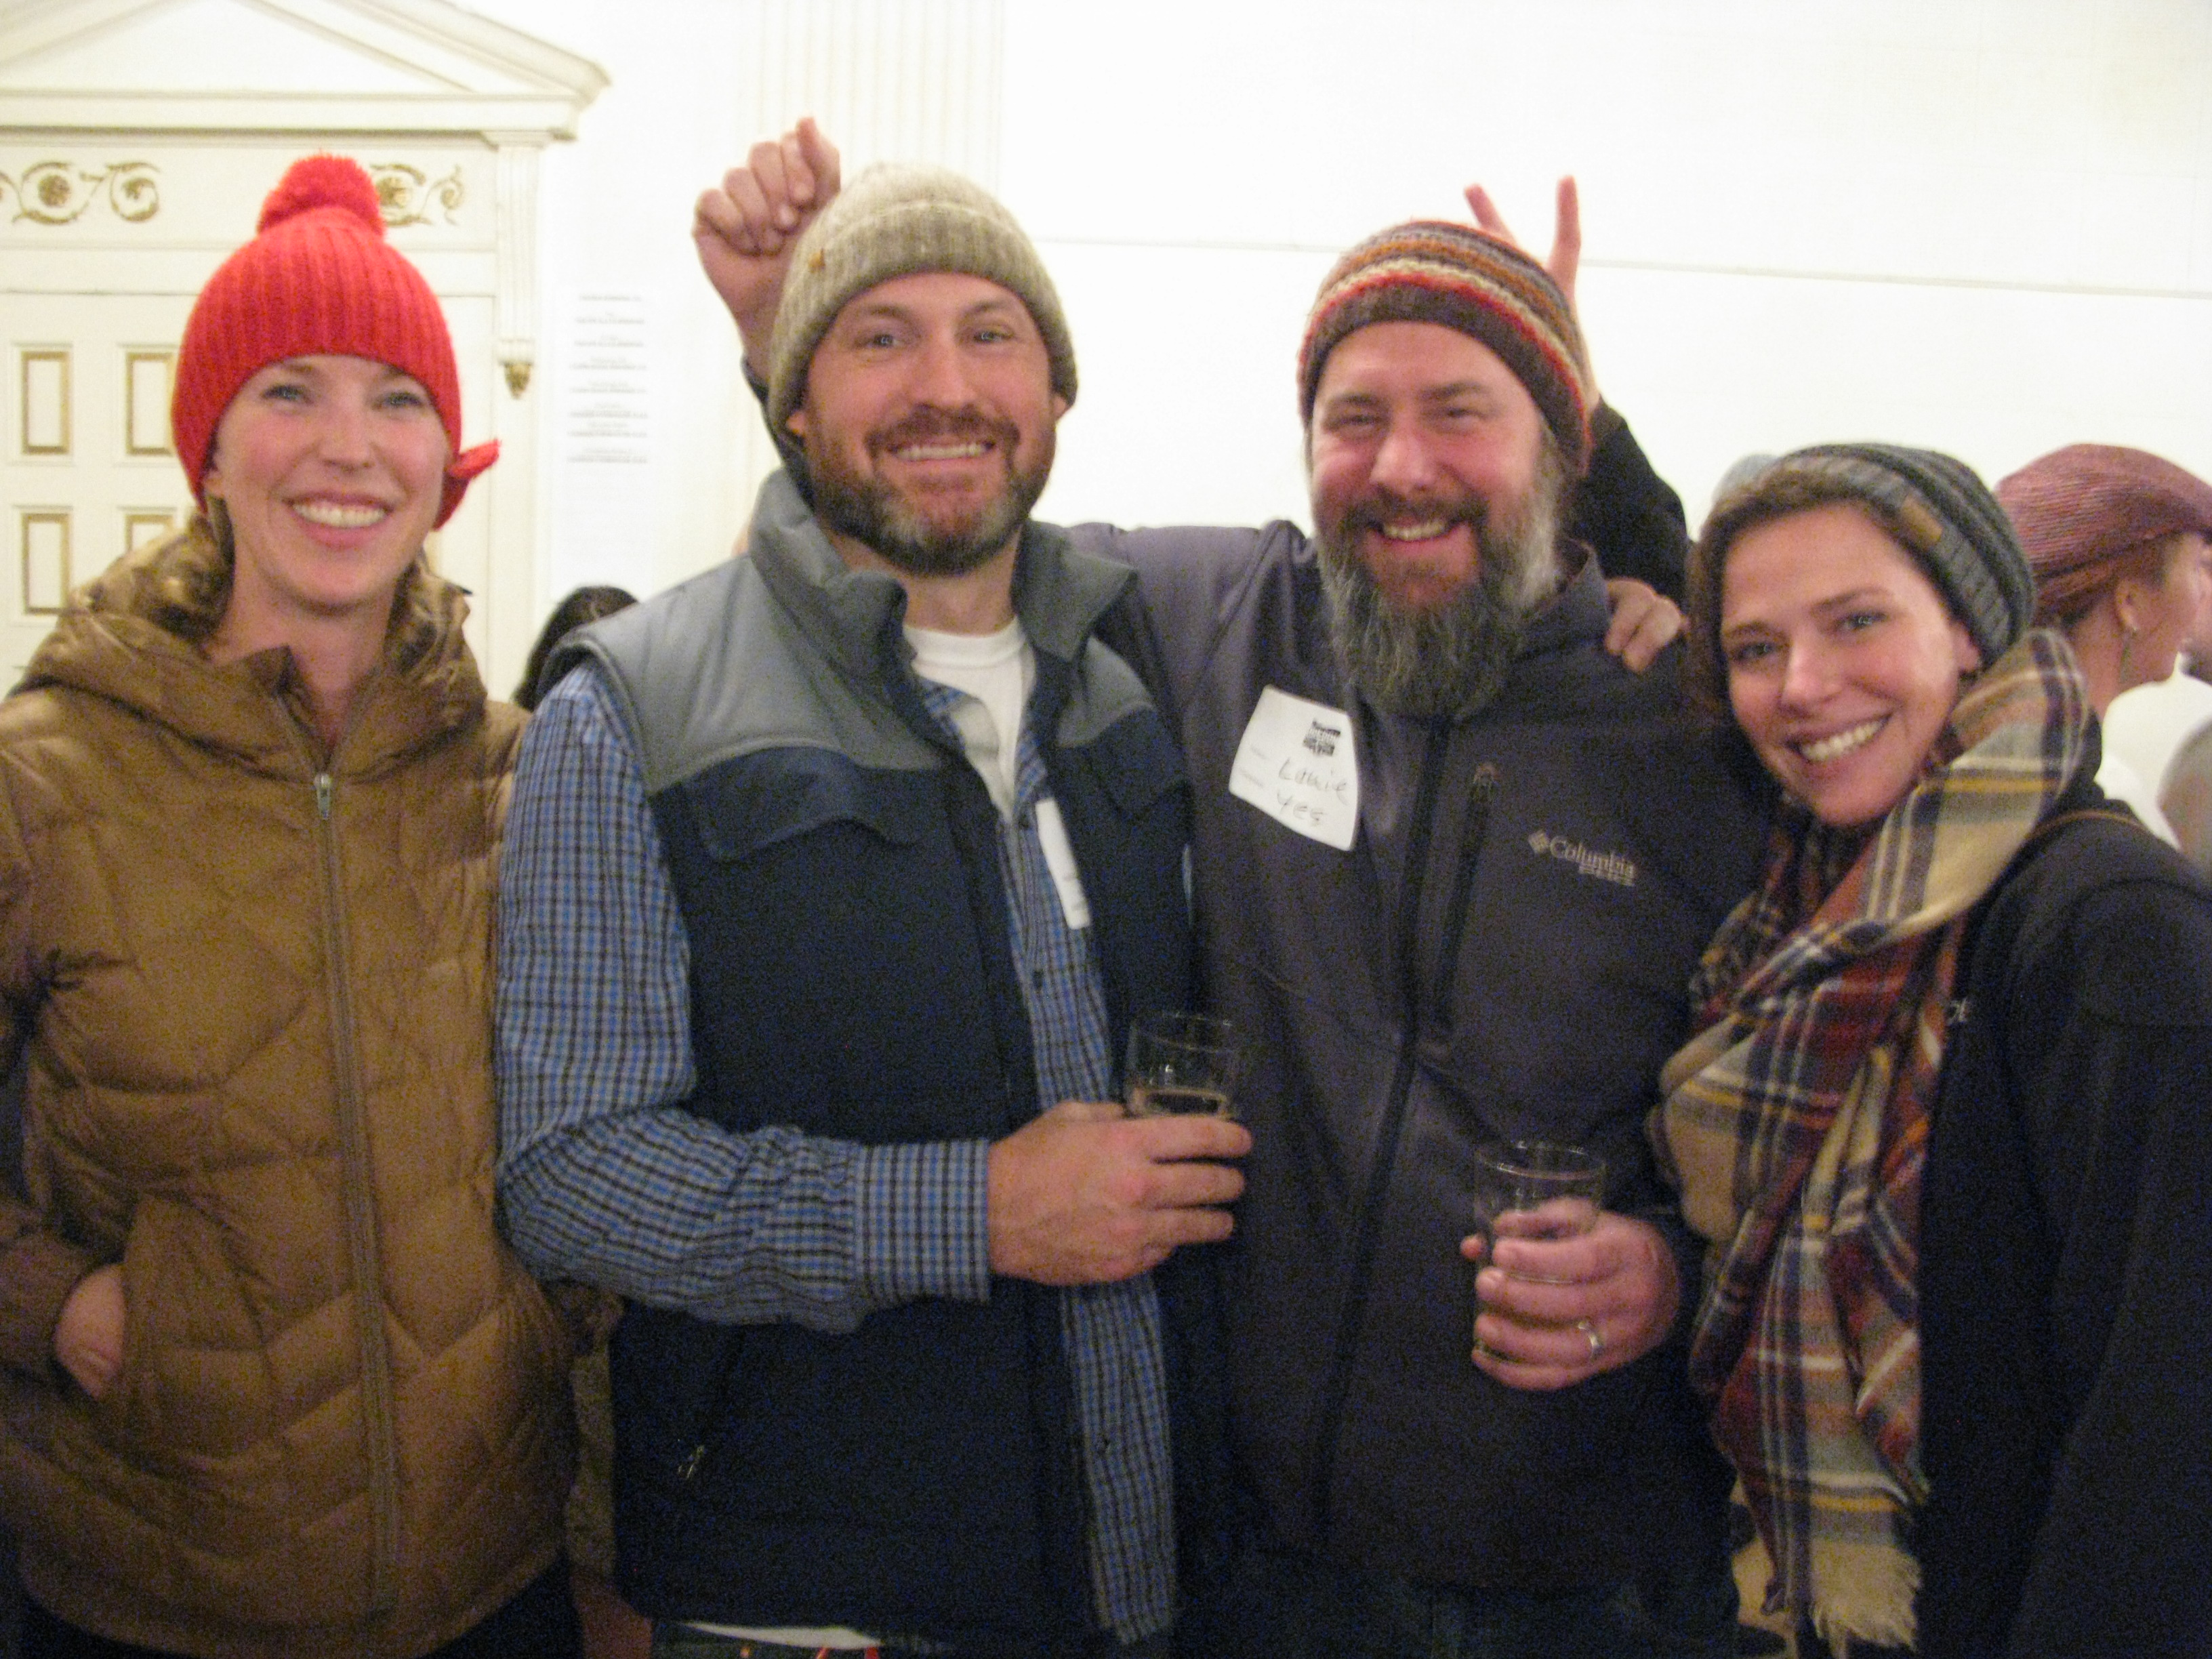 The crew from Burnside Brewing, Mary, Jay, Chip and Kristin. (FoystonFoto)